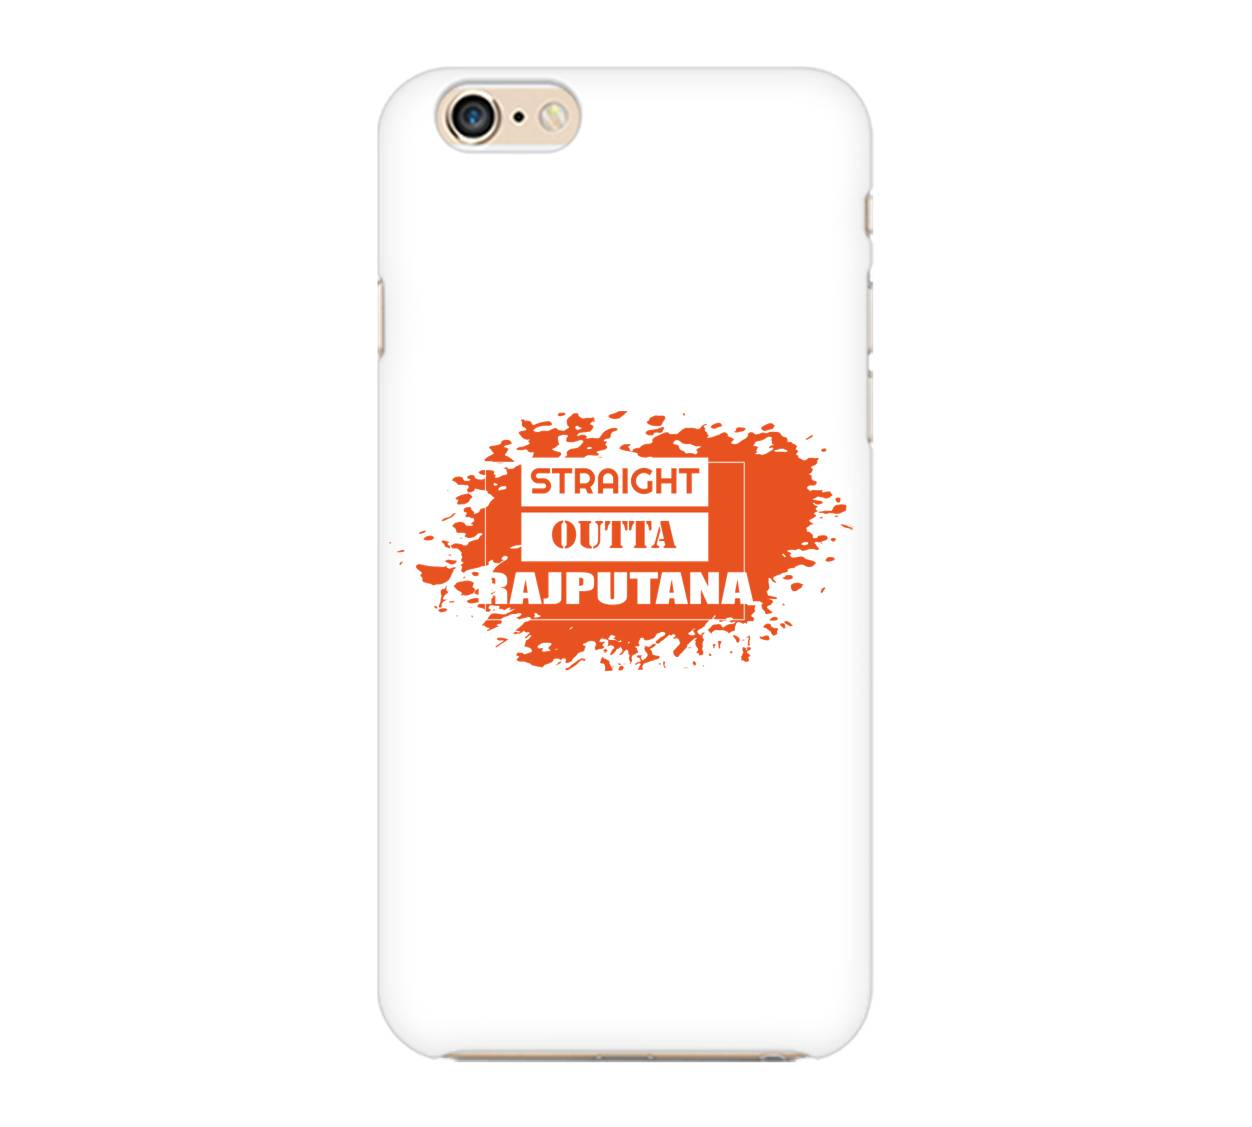 Straight Outta Rajputana Phone Cover